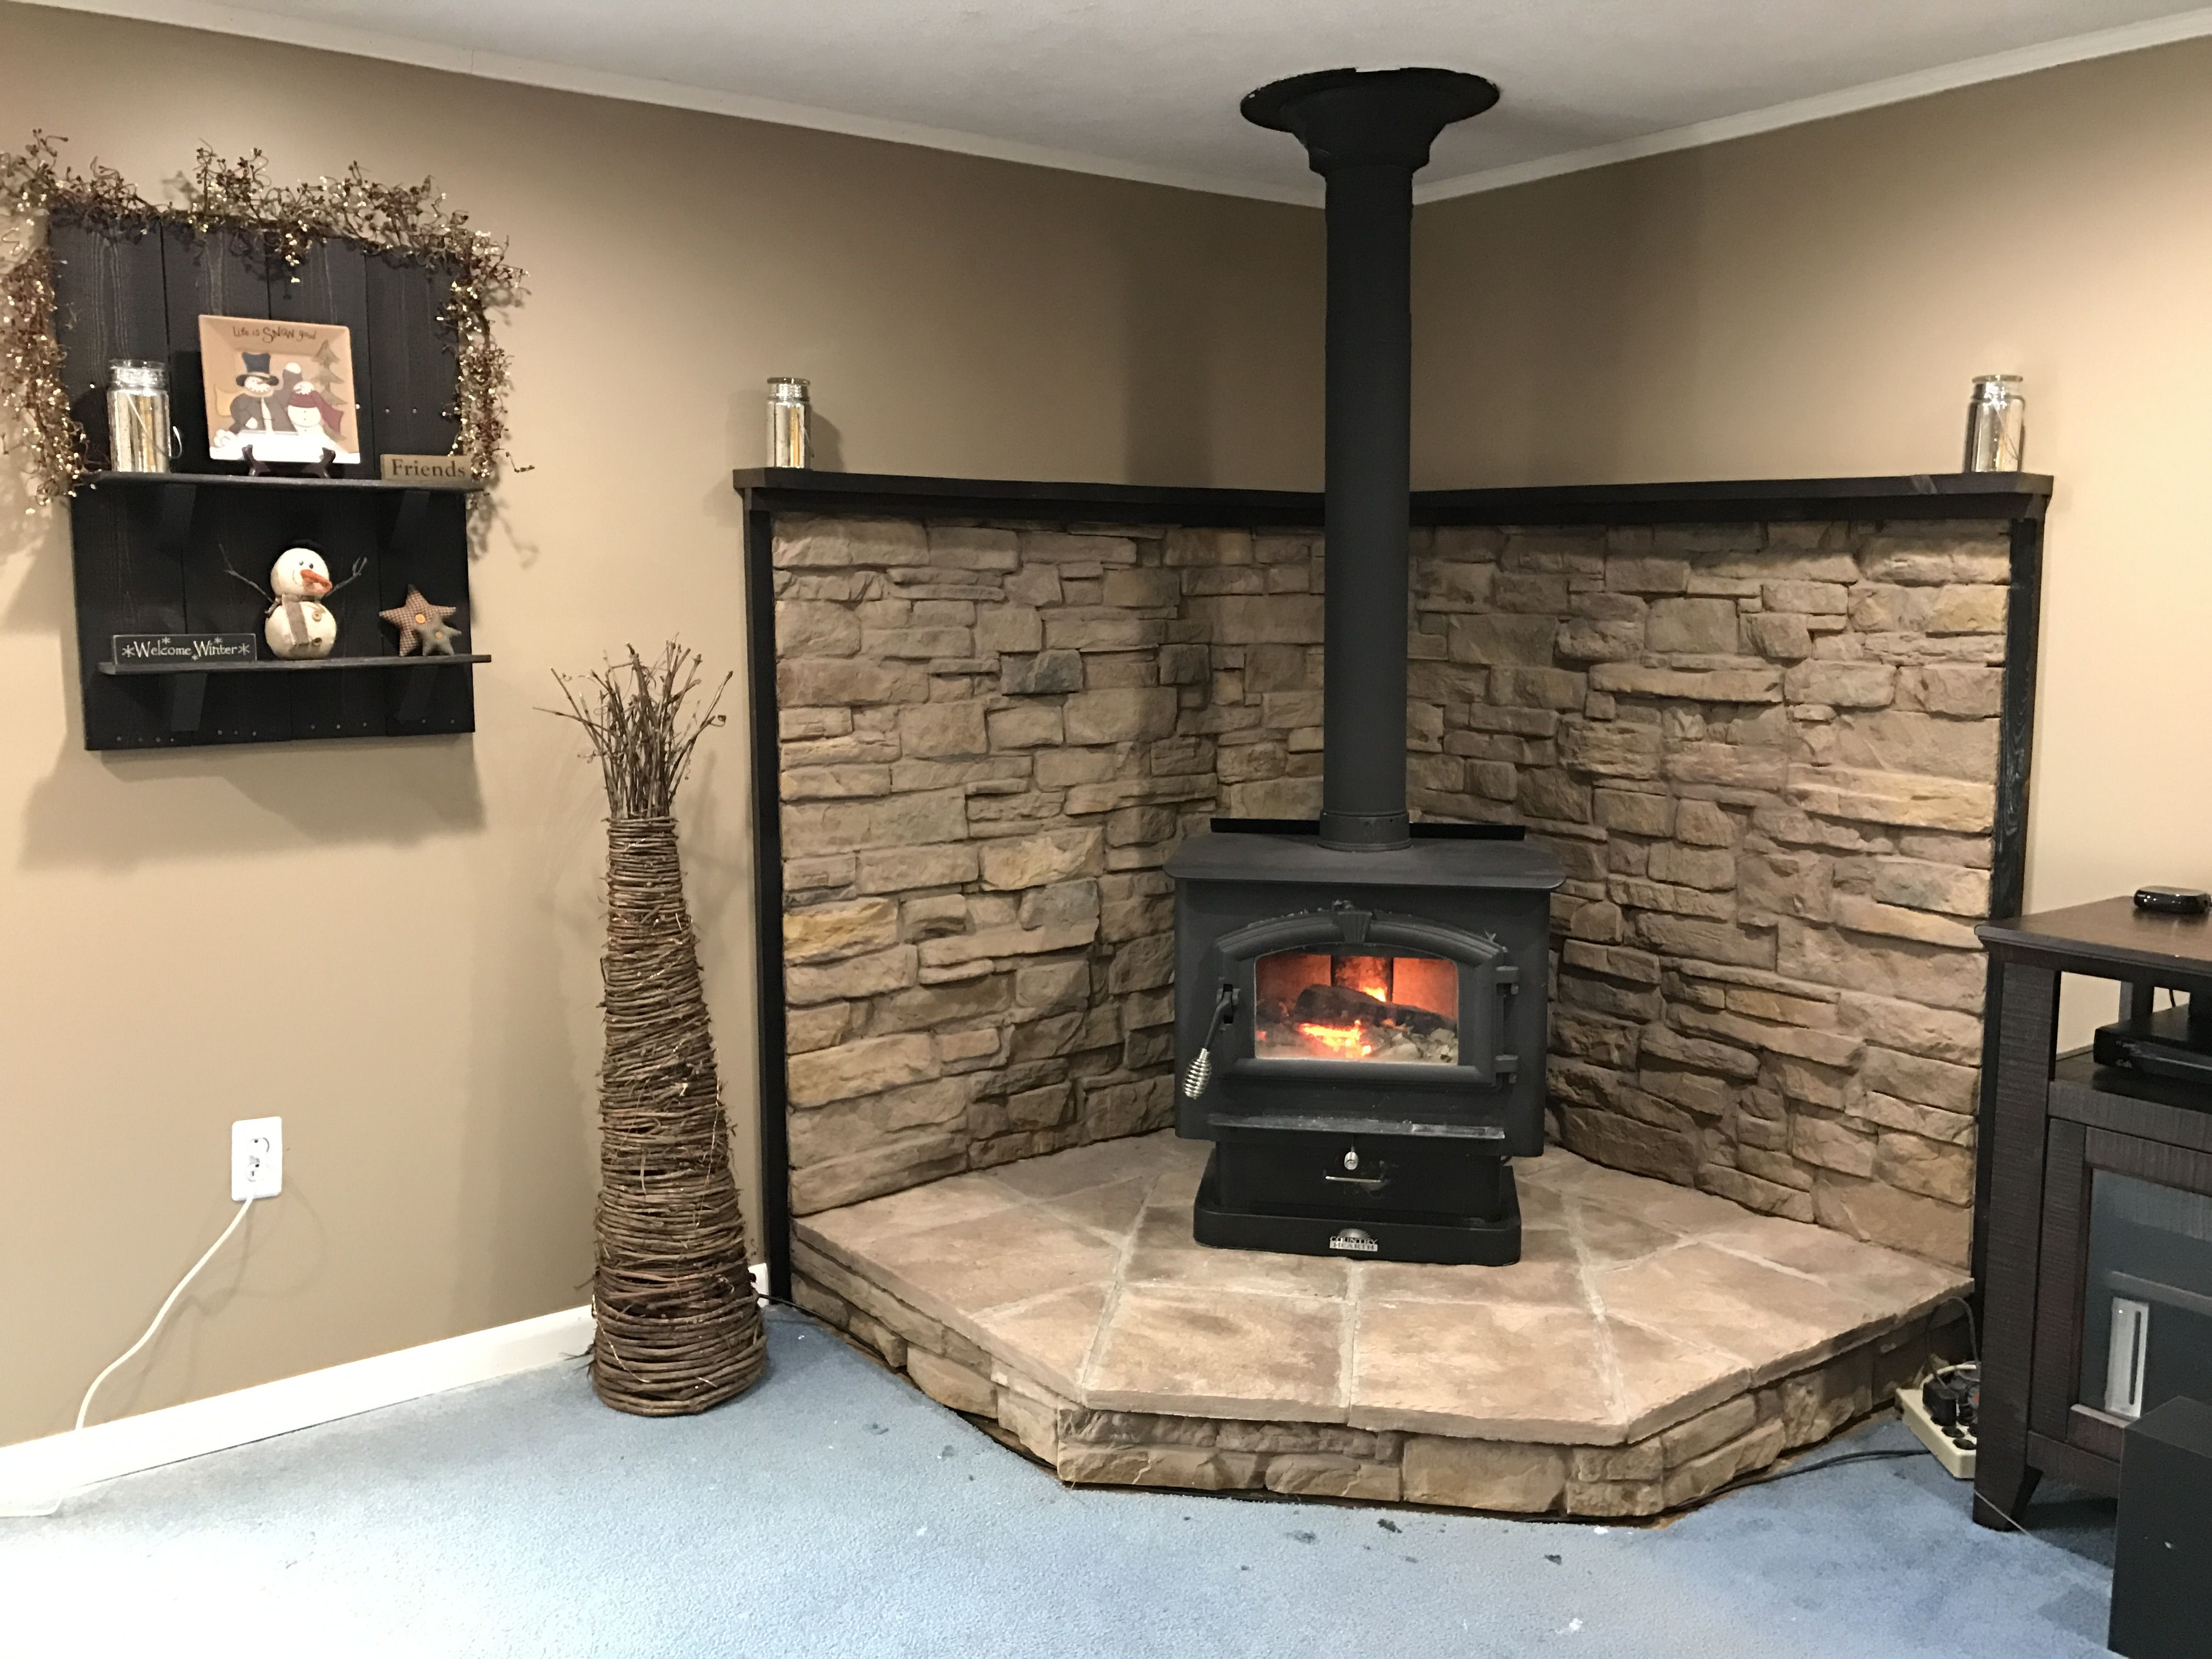 Pin By Mike Mcfarland On Woodstoves Diy Wood Stove Wood Stove